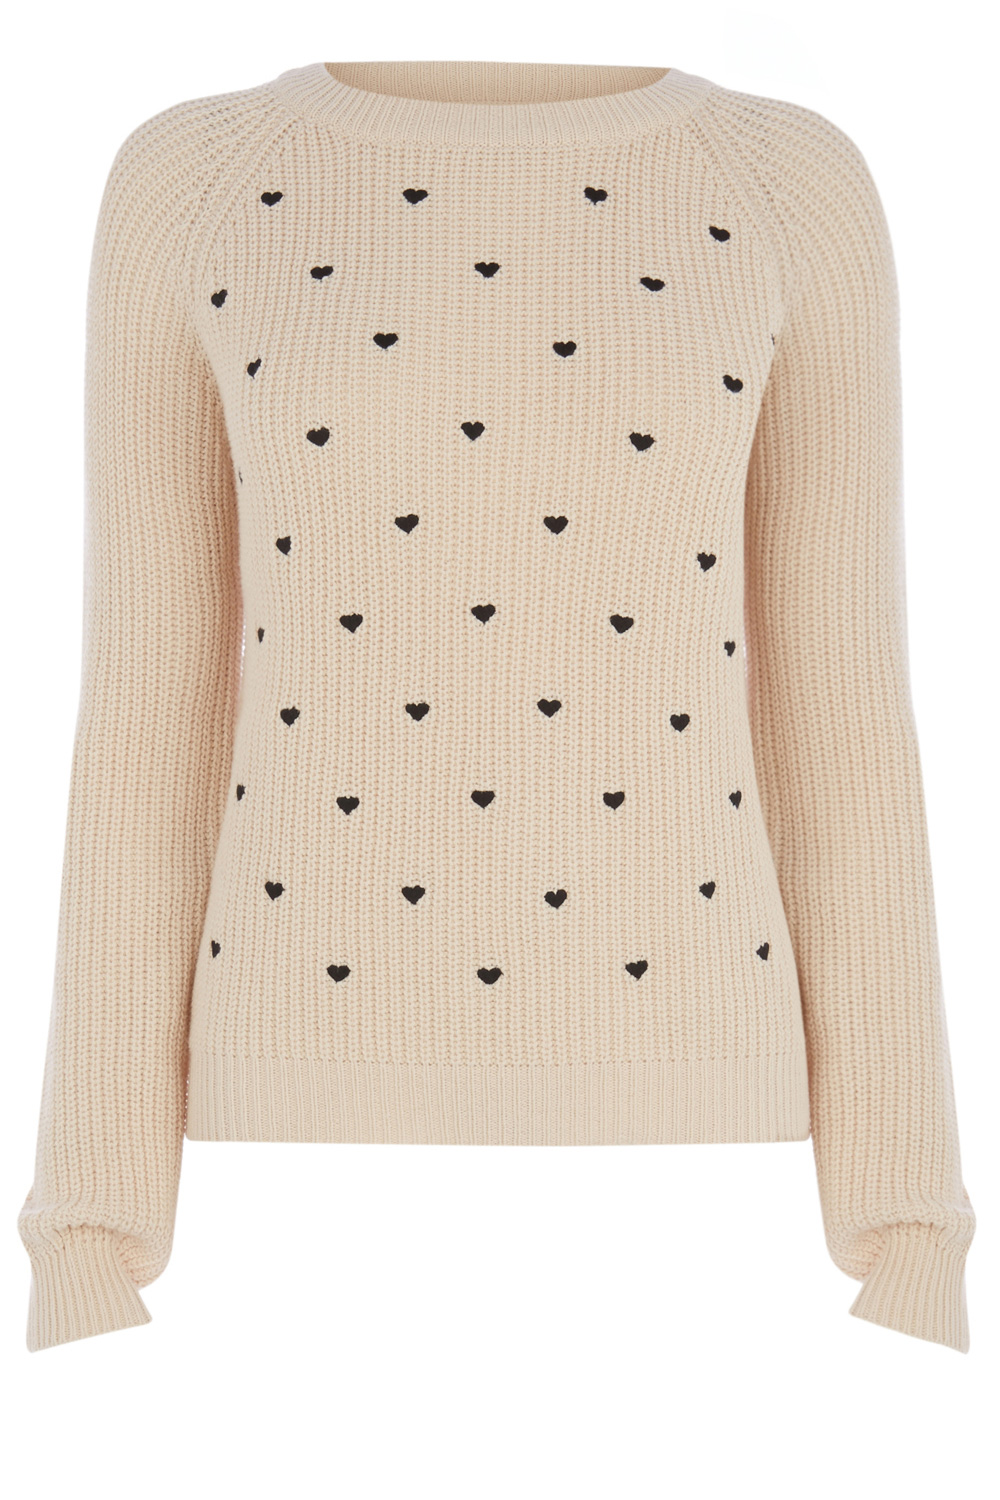 Knitwear | Natural Heart Embroidered Jumper | Oasis